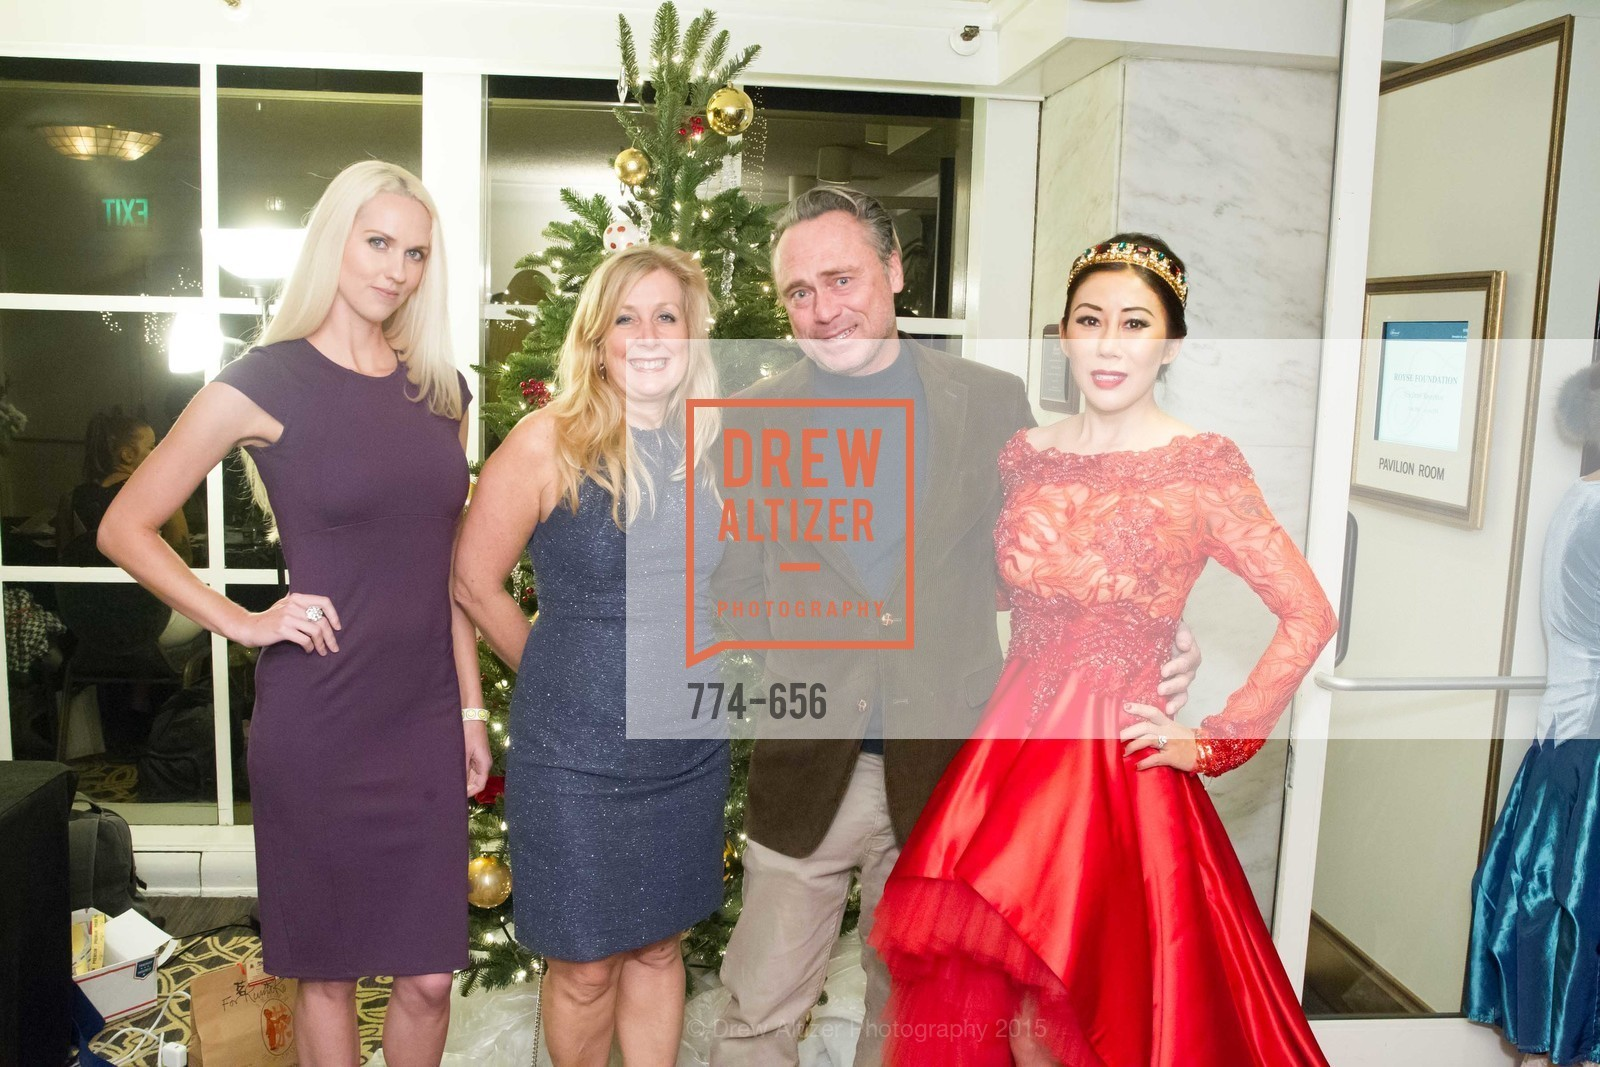 Brittany Reynolds, Carol Jupiter, Michael Merrins, Rumiko McCarthy, Joyful Holiday Toy Drive and Rumiko Birthday Bash, Fairmont, Pavilion Room, December 16th, 2015,Drew Altizer, Drew Altizer Photography, full-service agency, private events, San Francisco photographer, photographer california